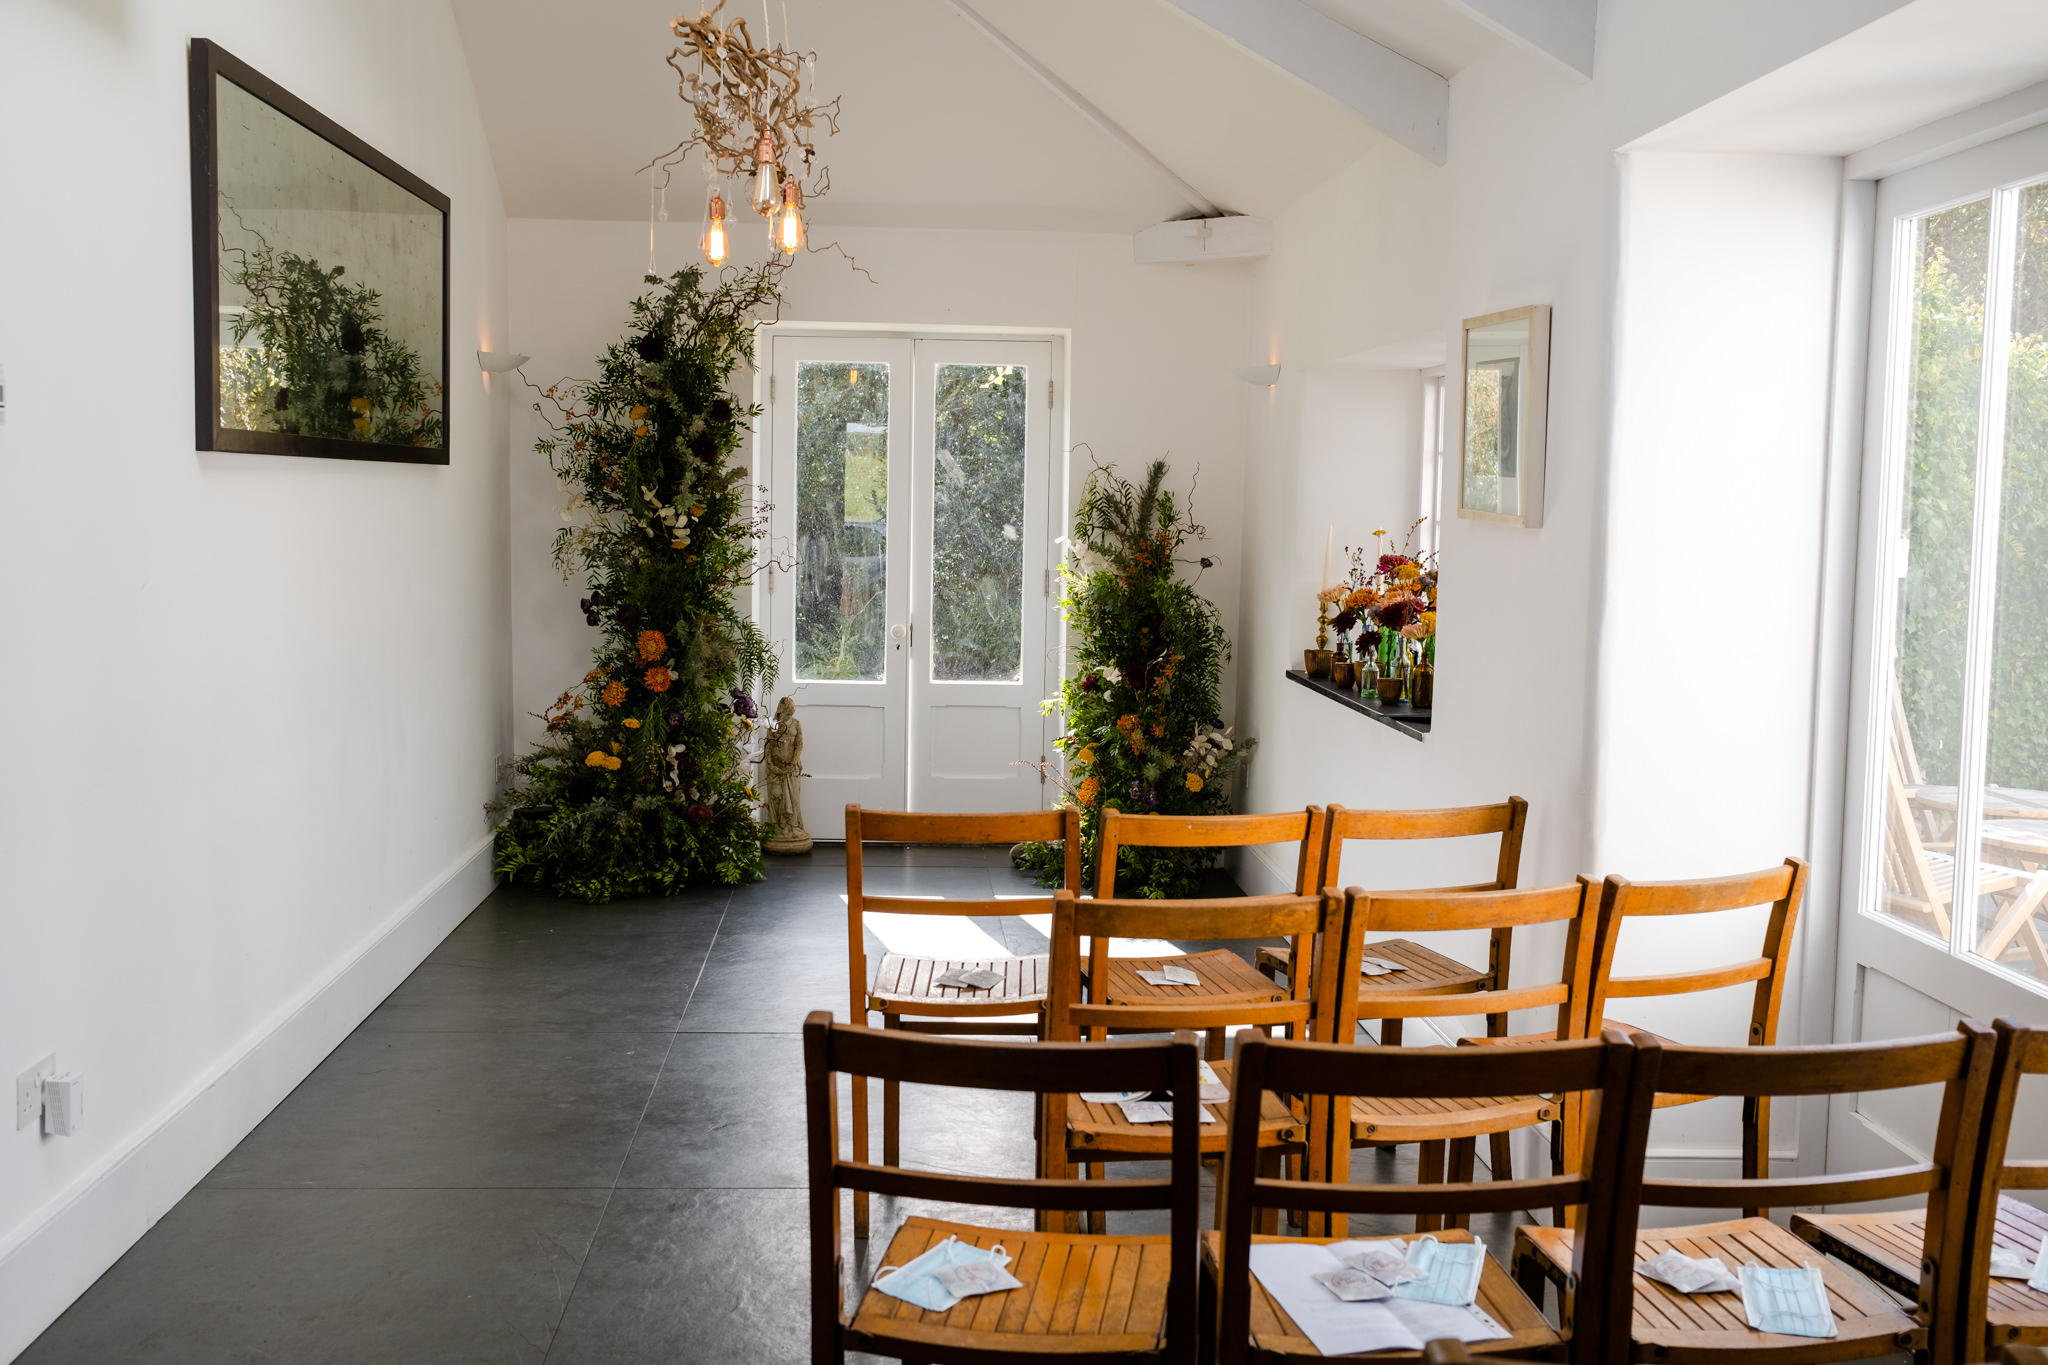 small wedding ceremony setup with wooden chairs and floral installation